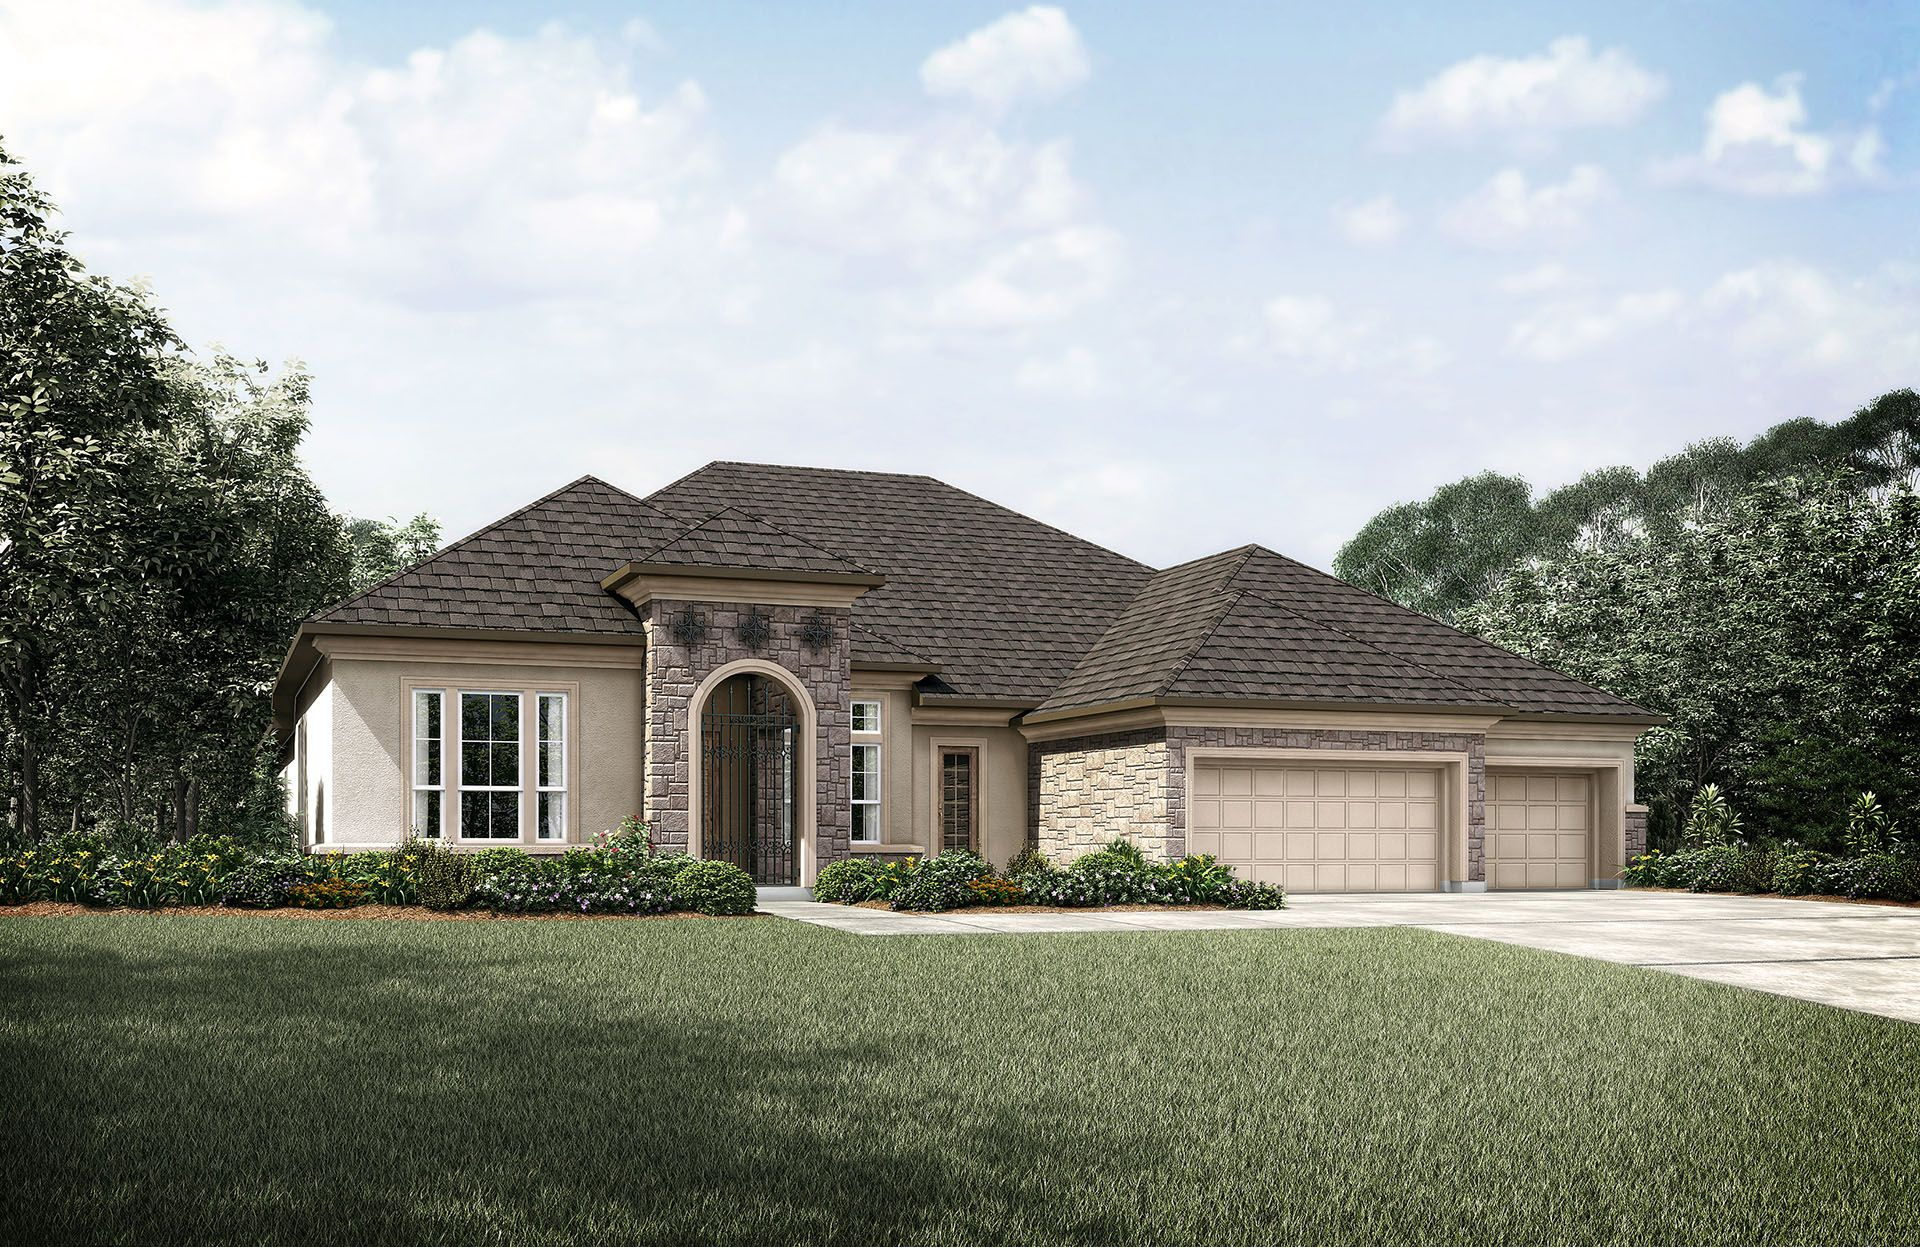 Unifamiliar por un Venta en Woodtrace - Lauren Iv 33823 Mill Creek Way Pinehurst, Texas 77362 United States